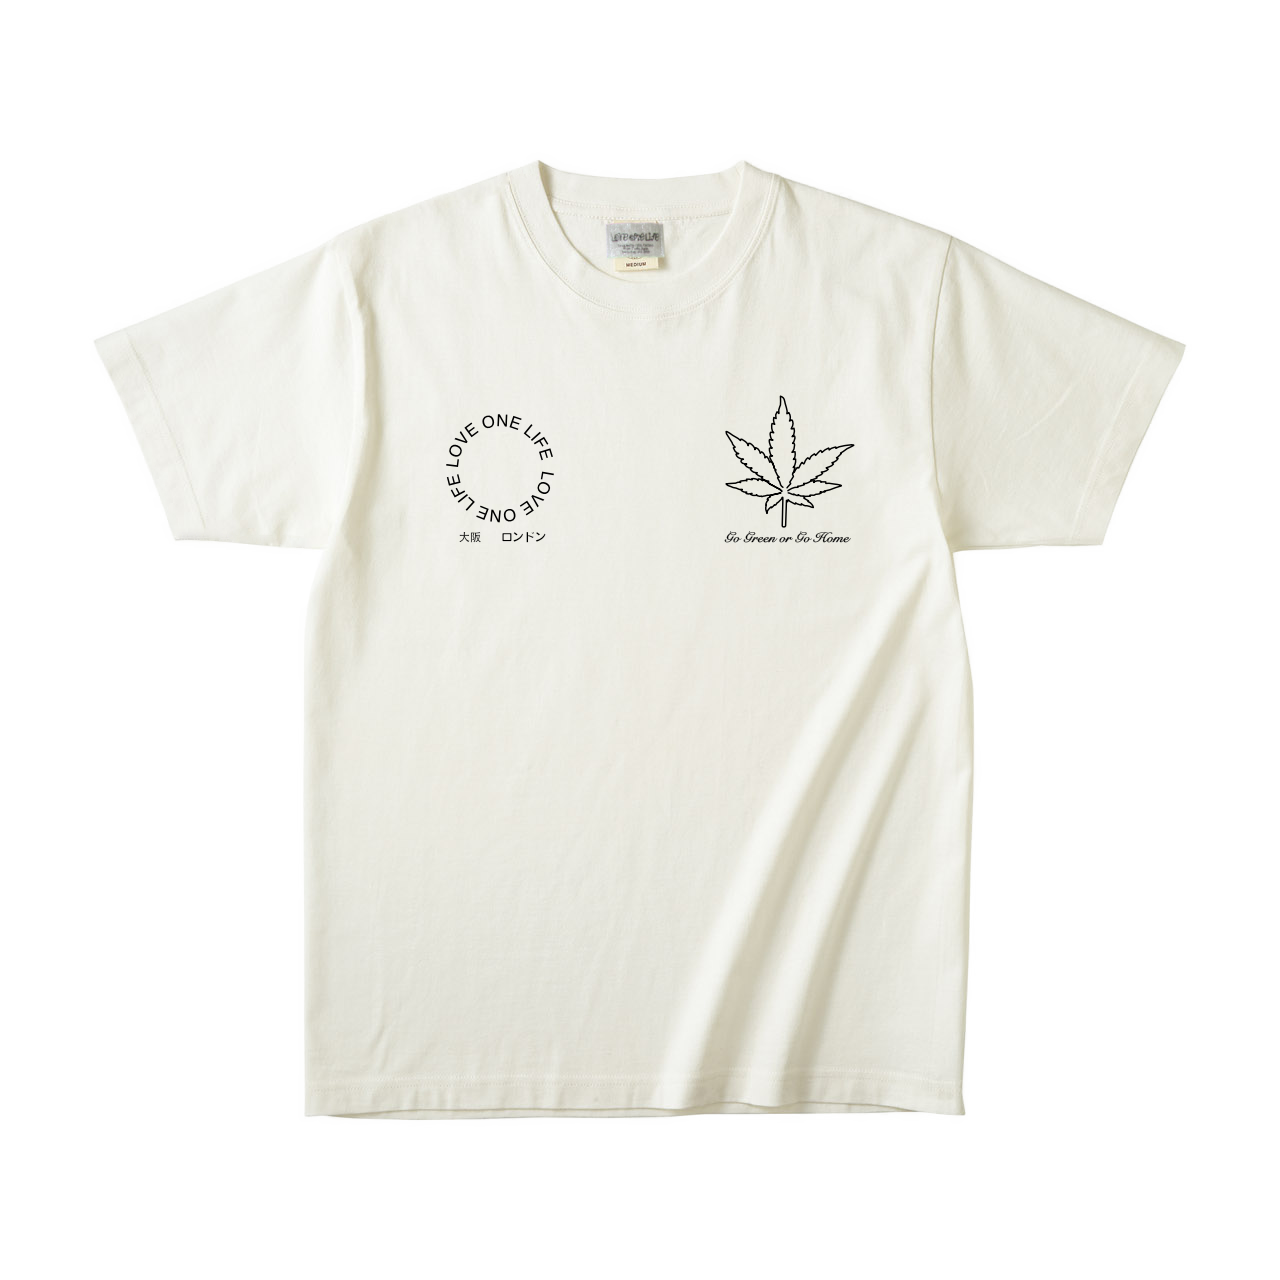 go green or go home tee in nature color